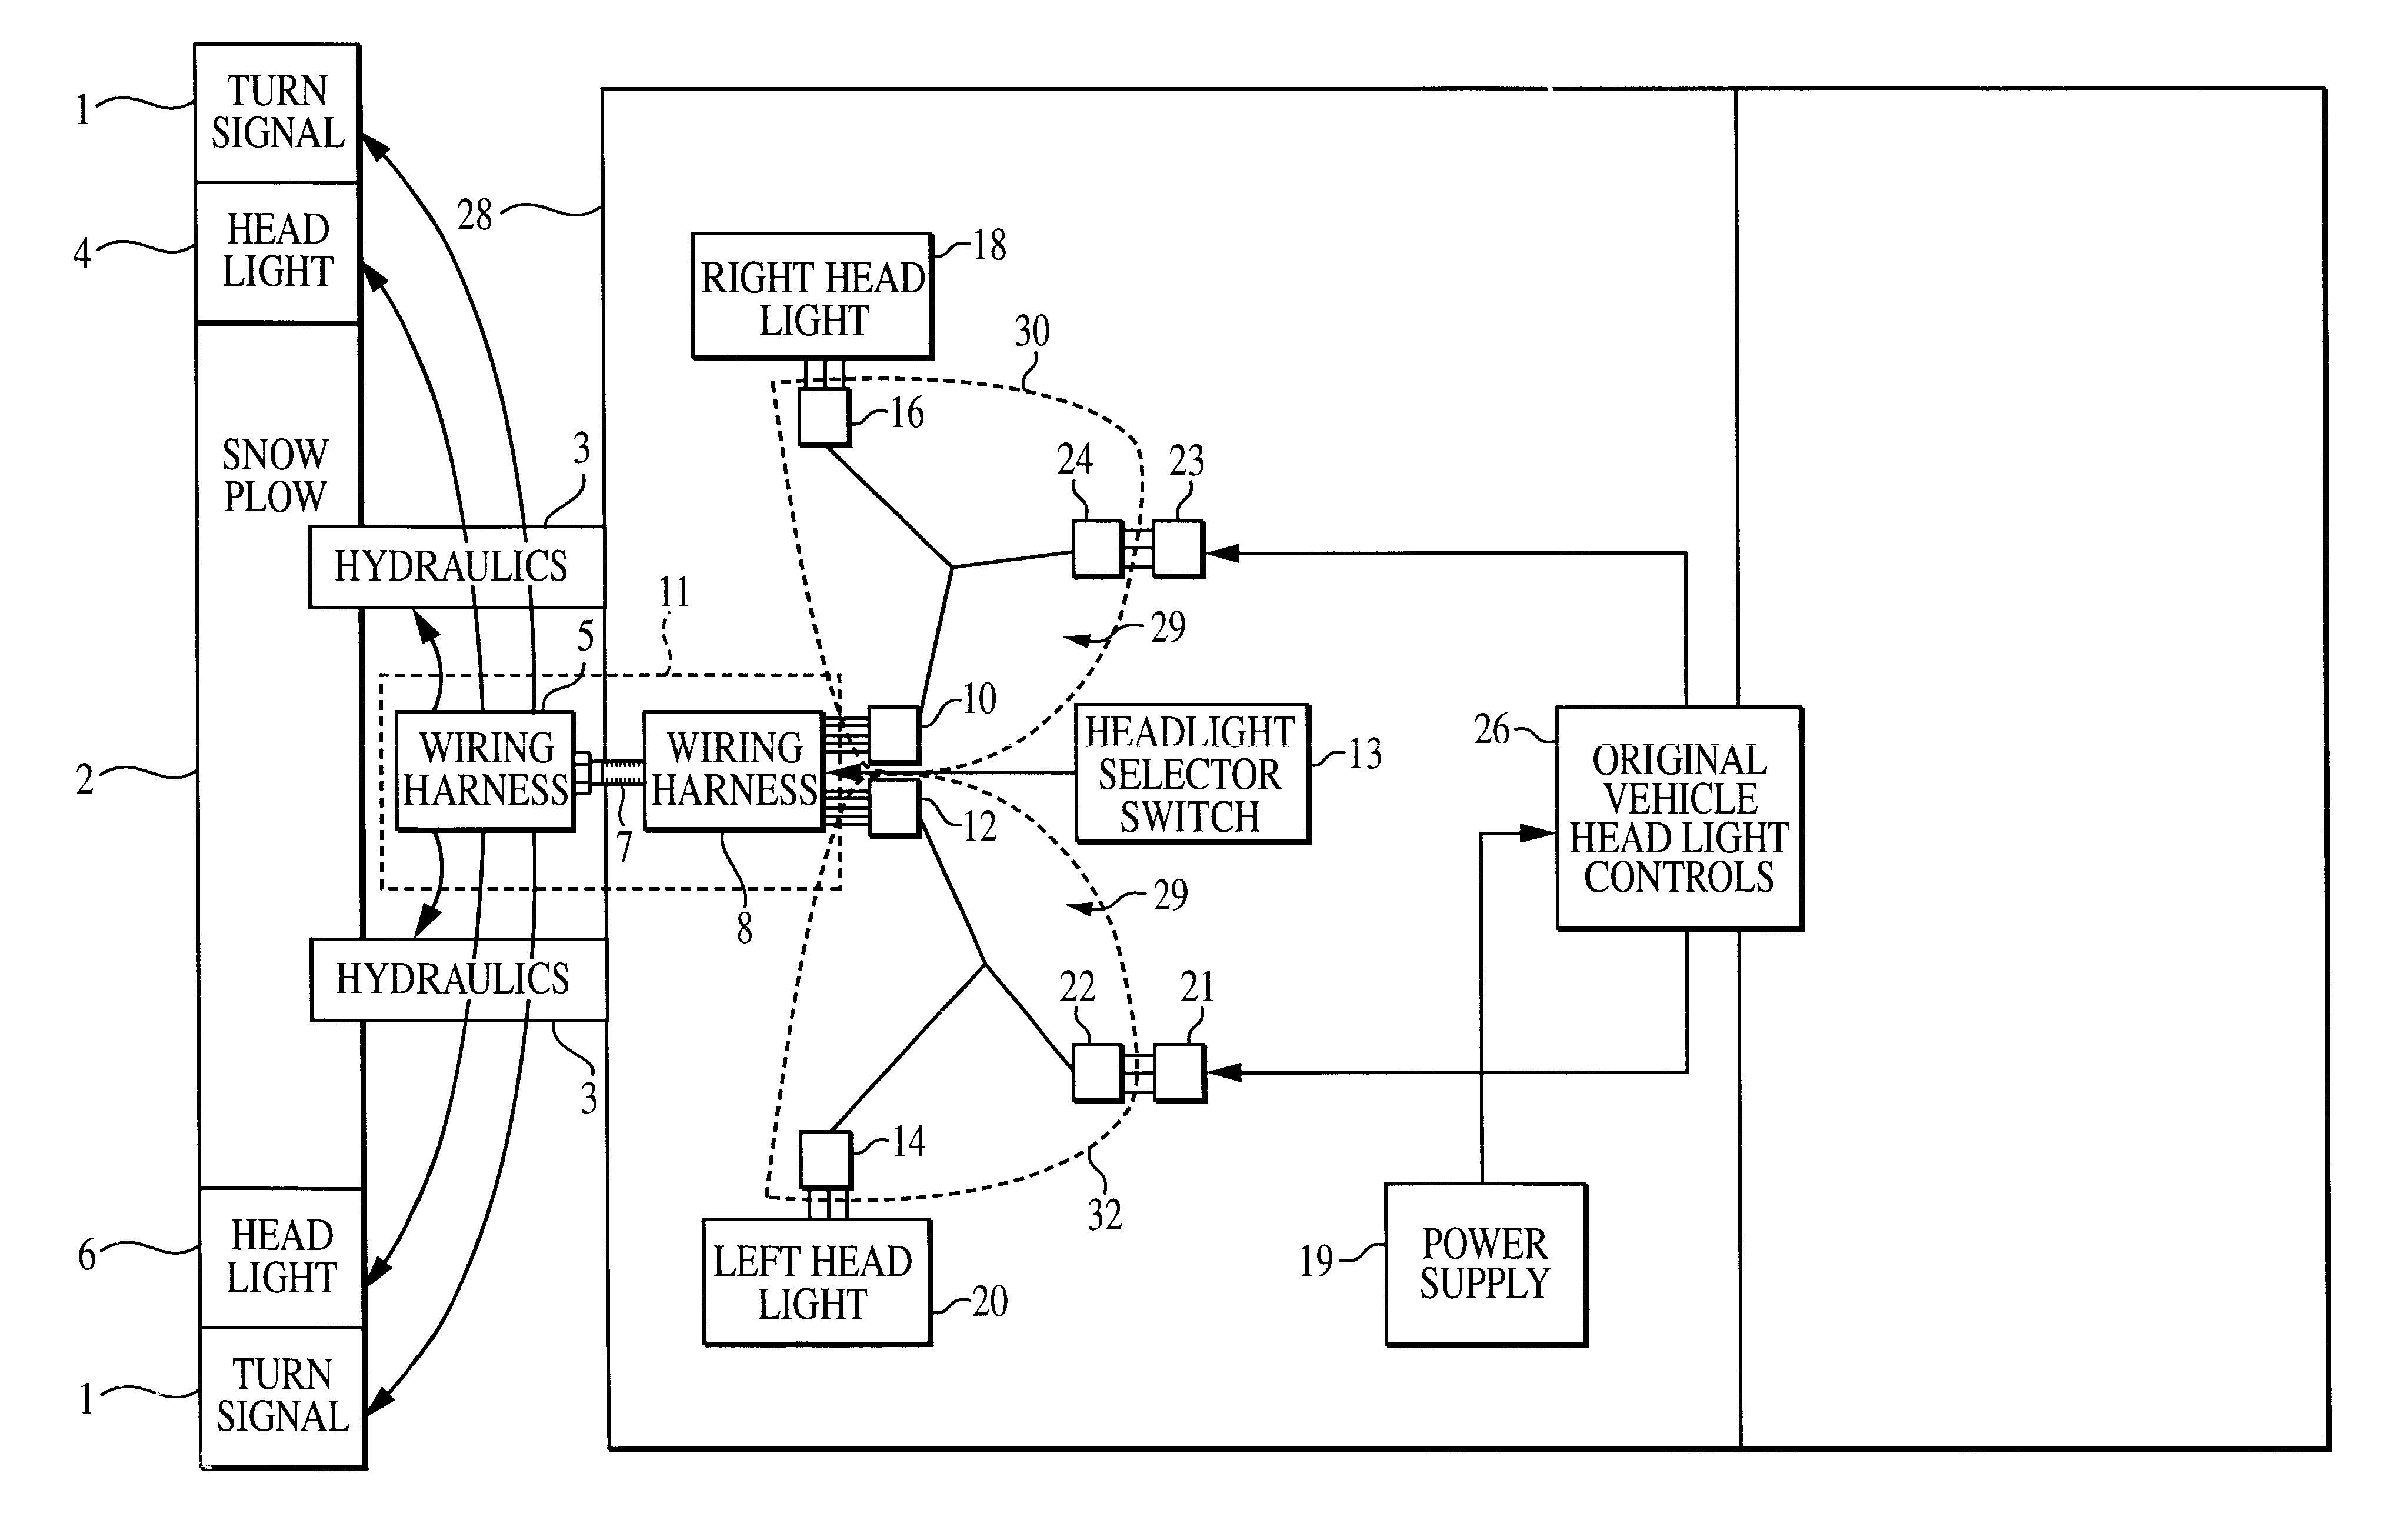 Meyer Plow Wiring Diagram Smith Brothers Services and Meyer Snow Plow Wiring Diagram In Sno Of Meyer Plow Wiring Diagram